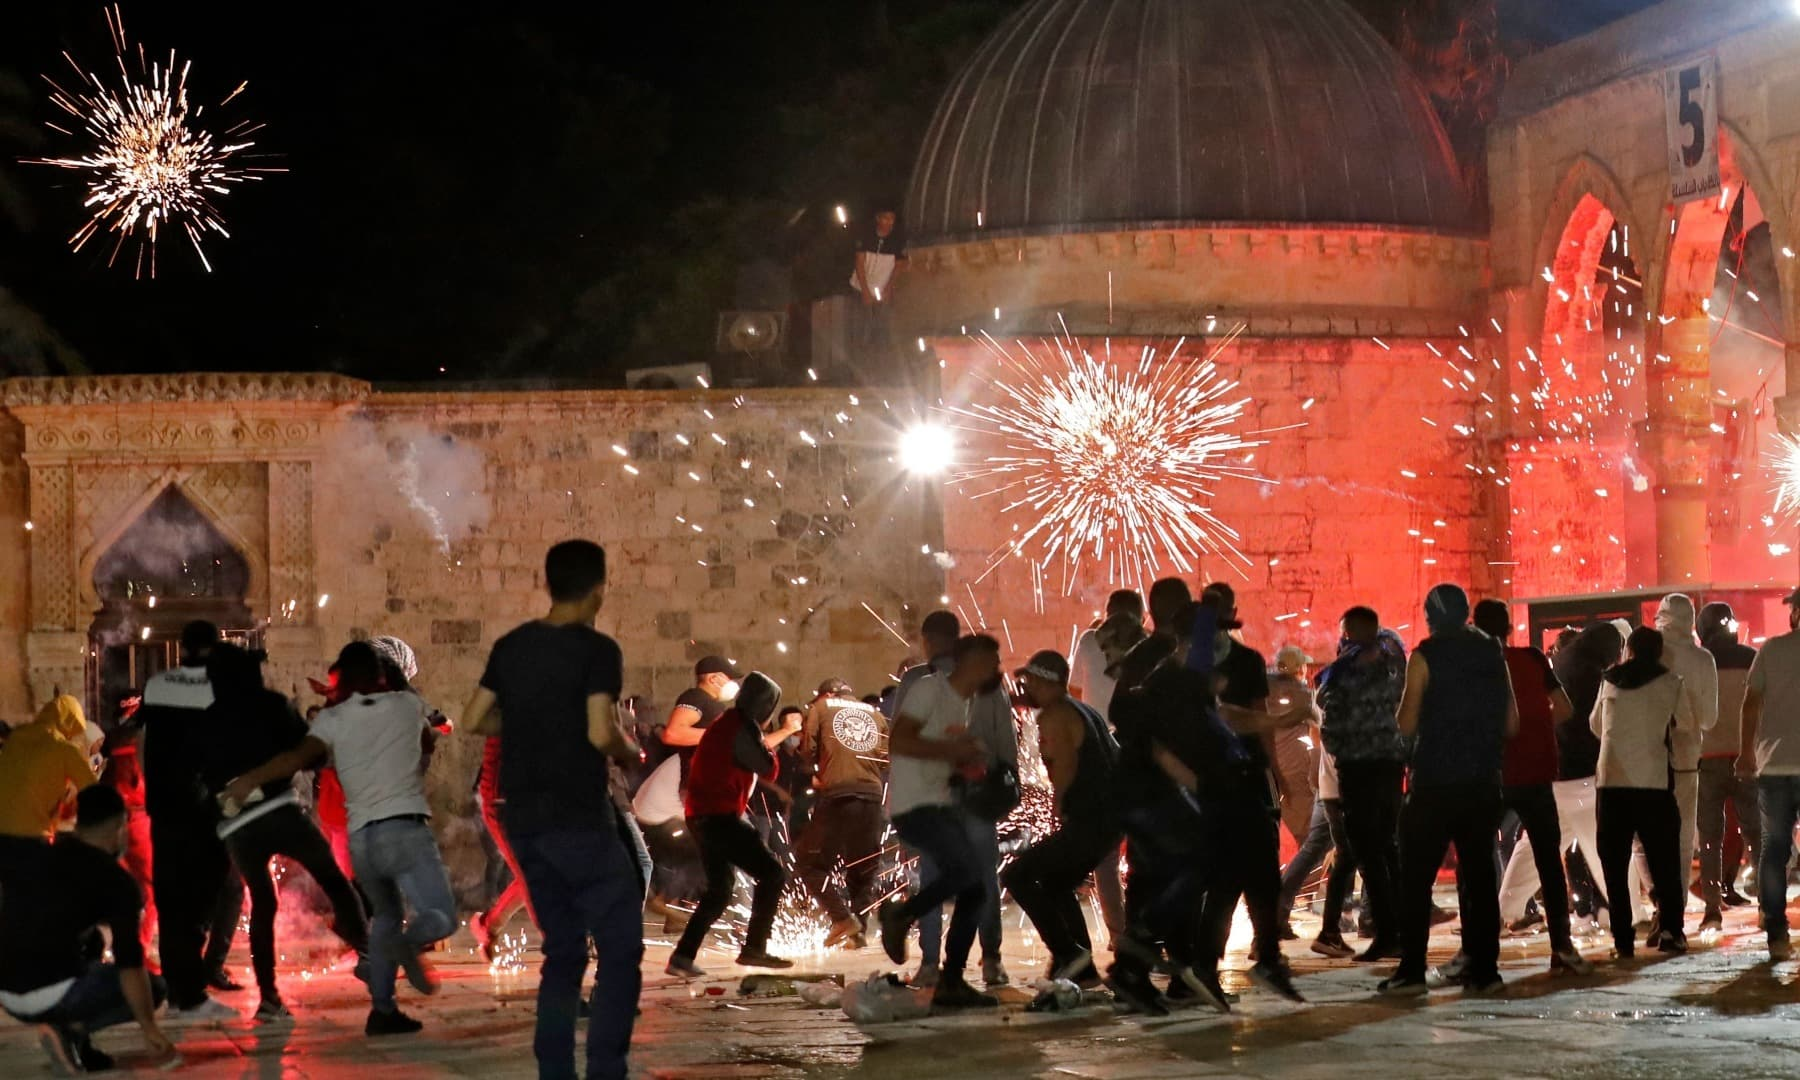 Stun grenades burst in the air amid clashes between Palestinian protesters and Israeli security forces at the Al-Aqsa mosque compound in Jerusalem, on May 7, 2021. — AFP